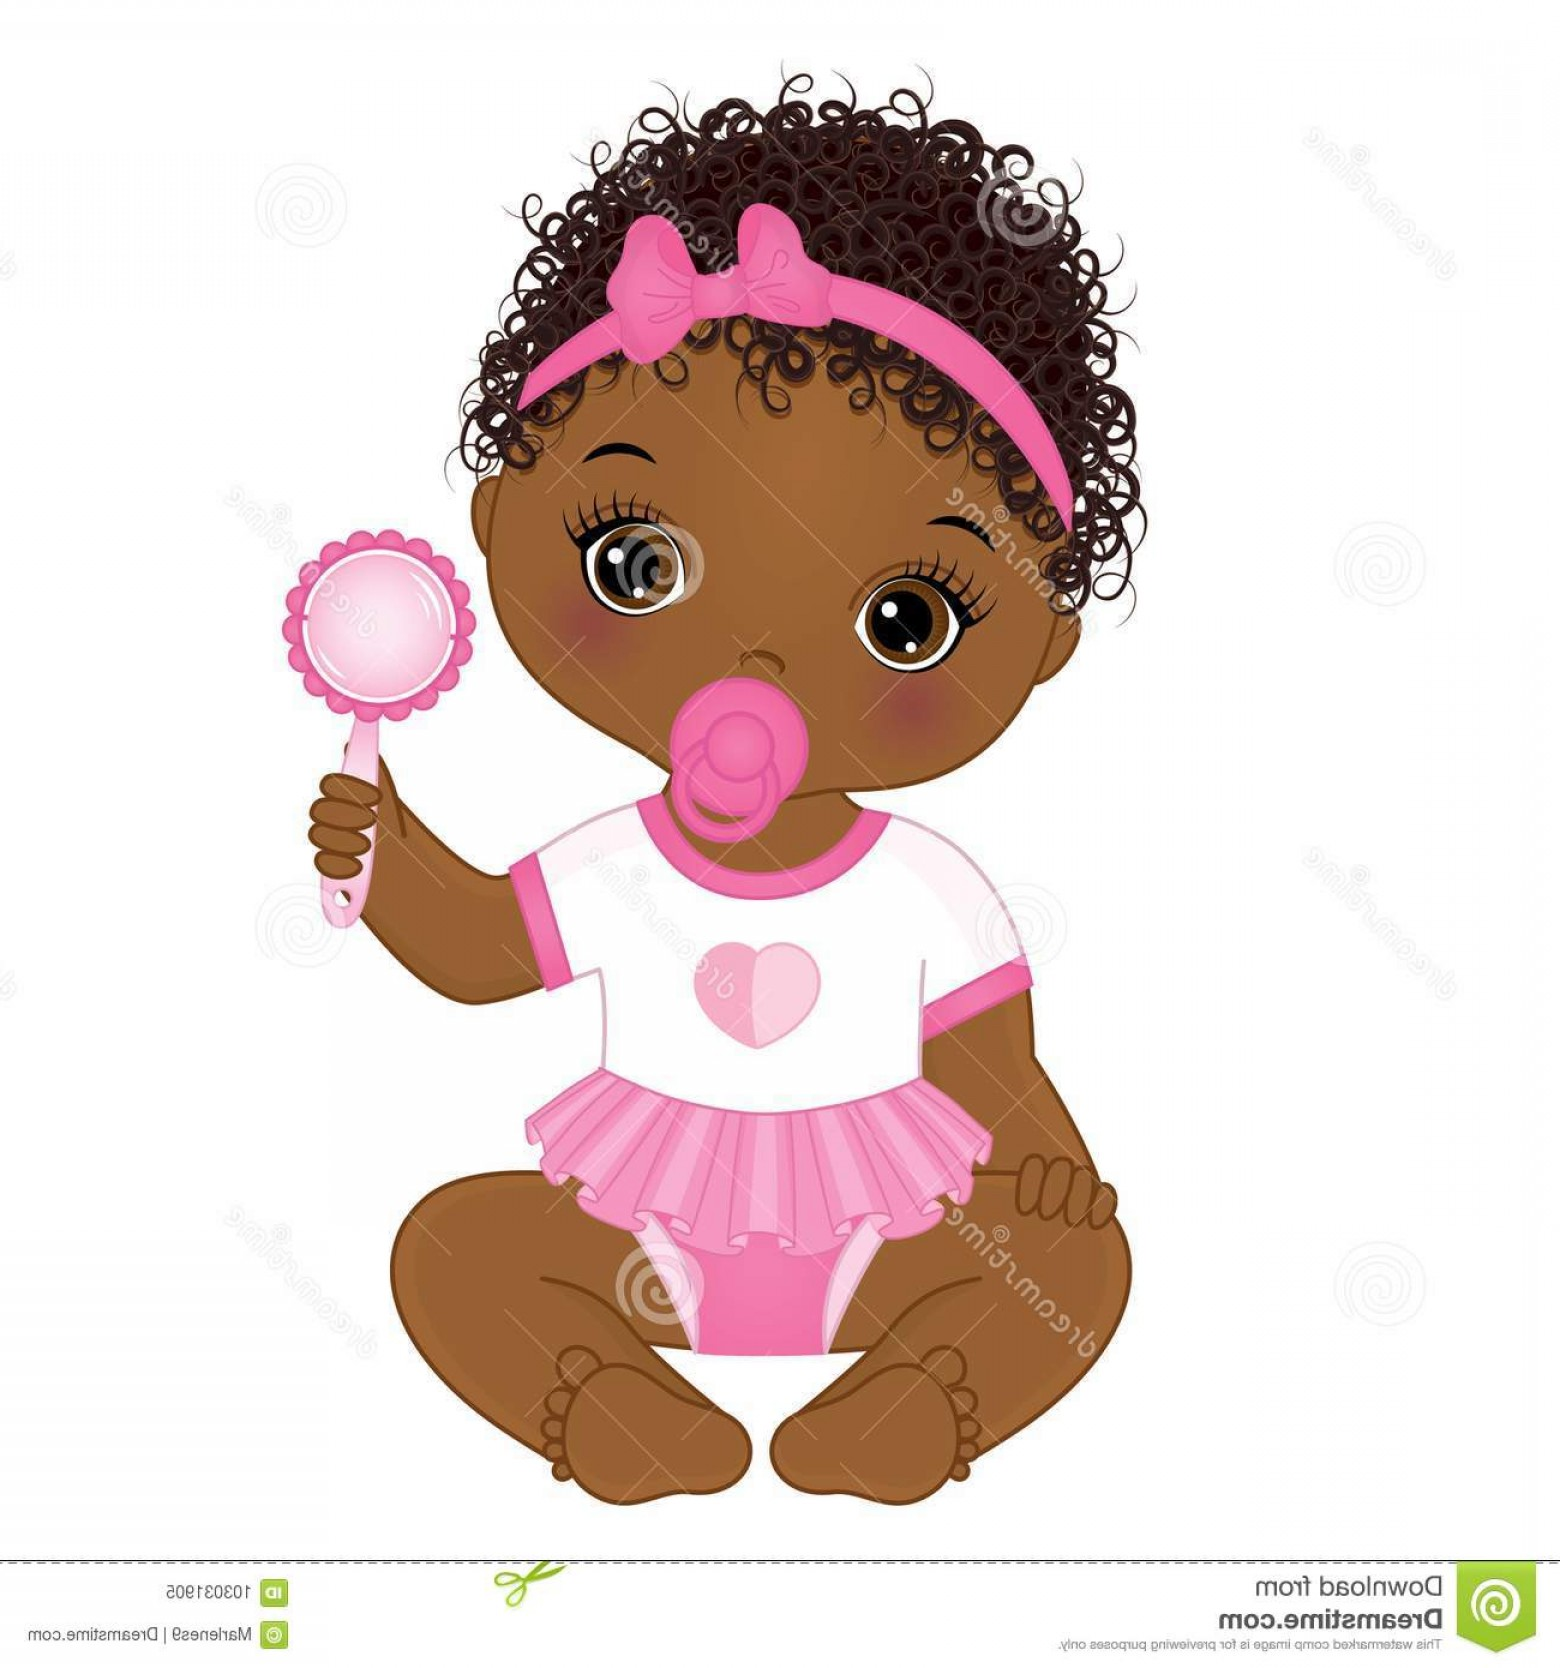 Nautical Vector Art Baby Rattle: Vector Cute African American Baby Girl Rattle Vector Cute African American Baby Girl Rattle Sitting Vector Baby Girl Image